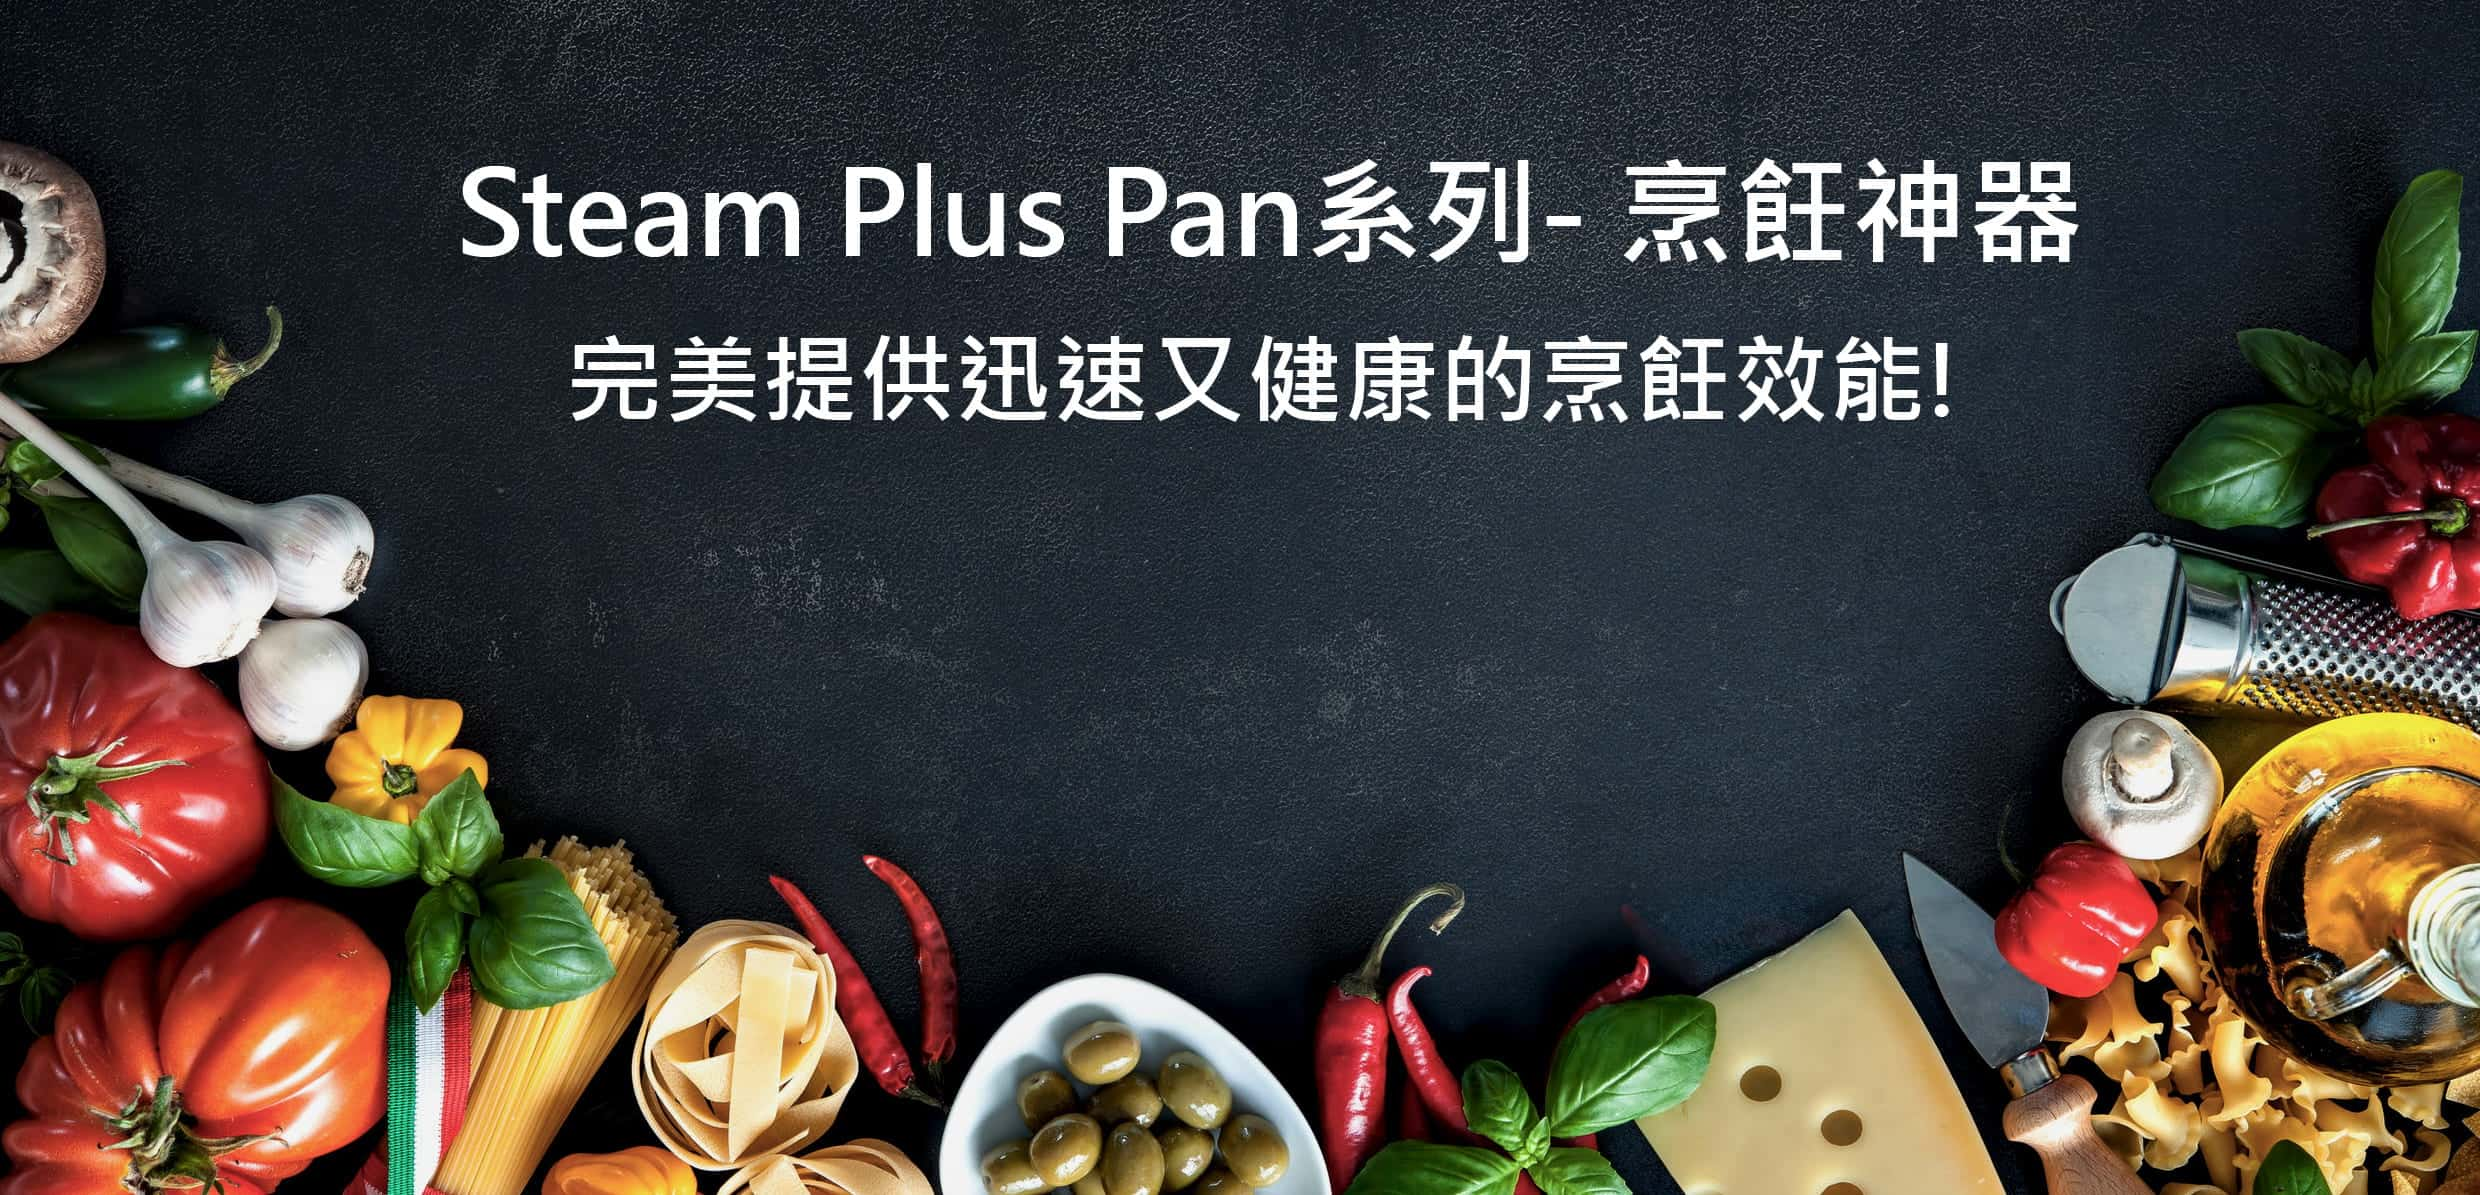 【Neoflam】Steam Plus Pan烹飪神器-輕頑味